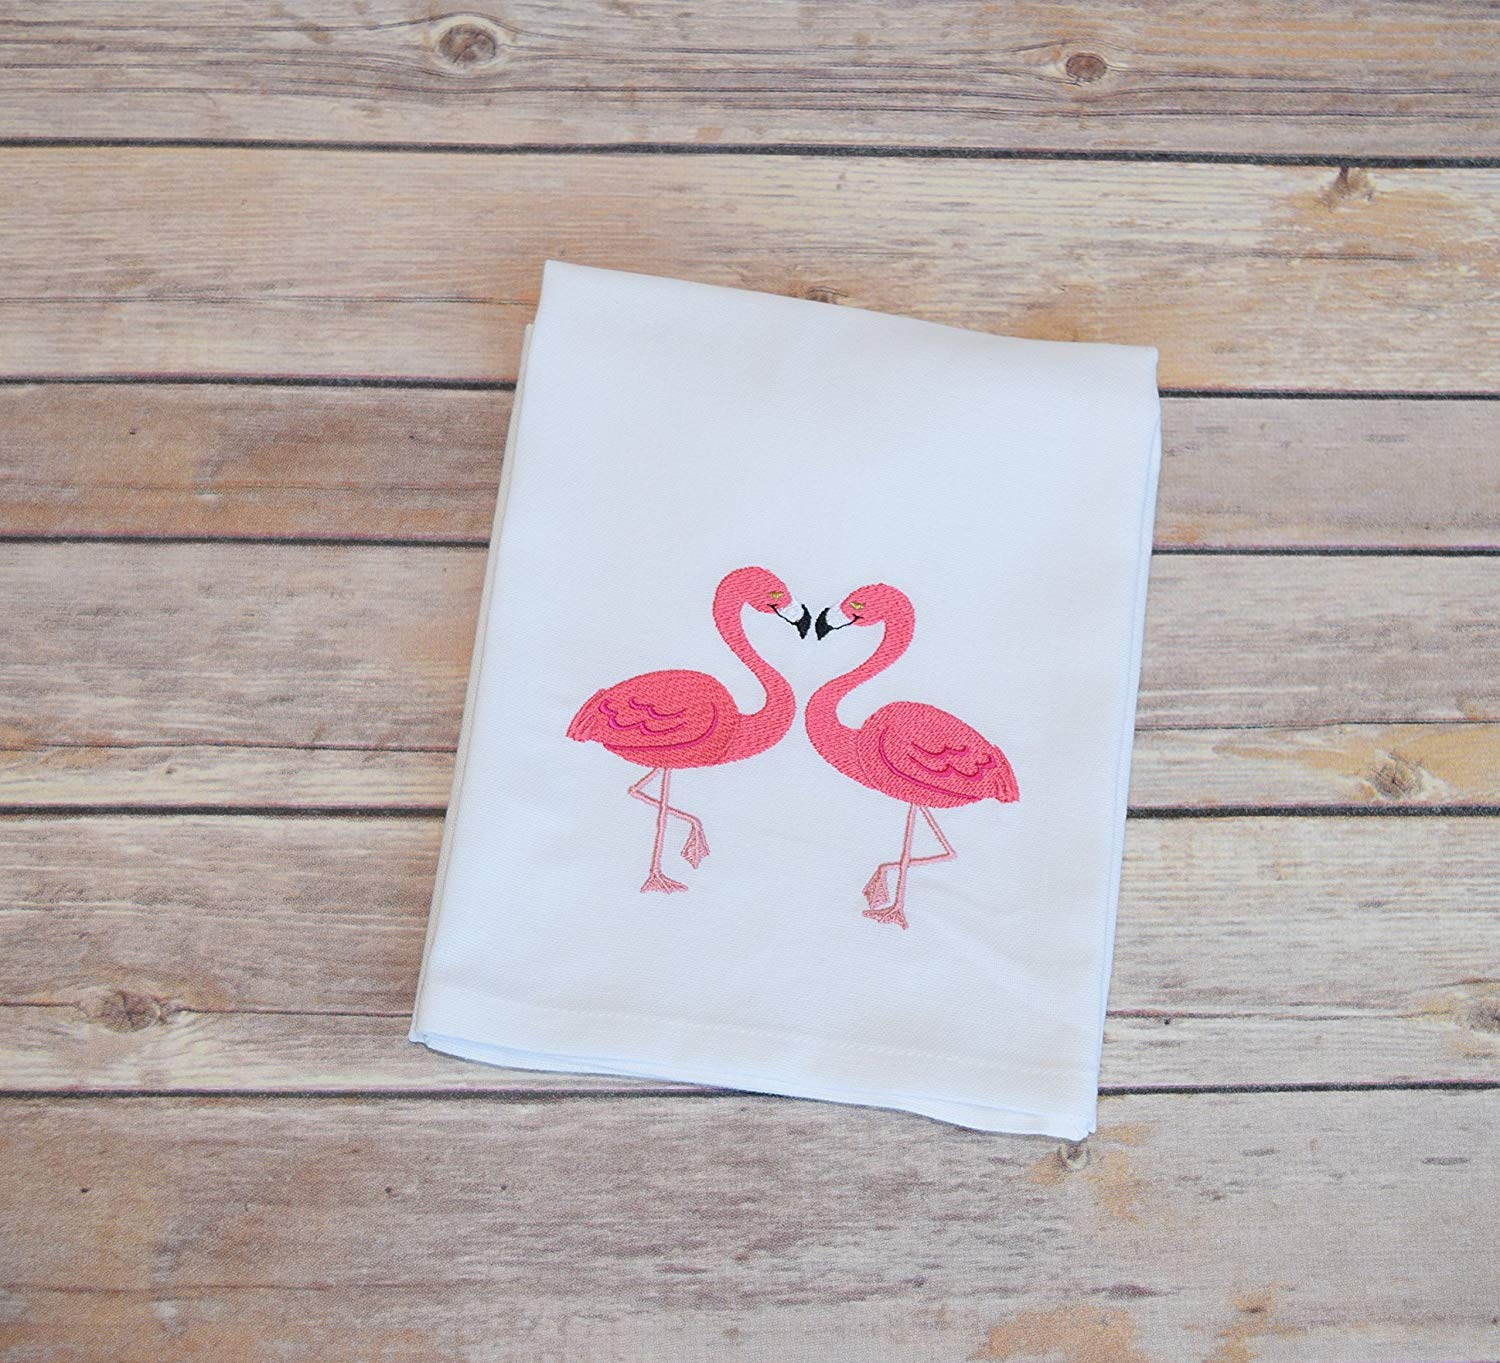 flamingo towe, Flour sack towels, flour sack dish towel white, flour sack tea towels, embroidered dish towel, hanging dish towel